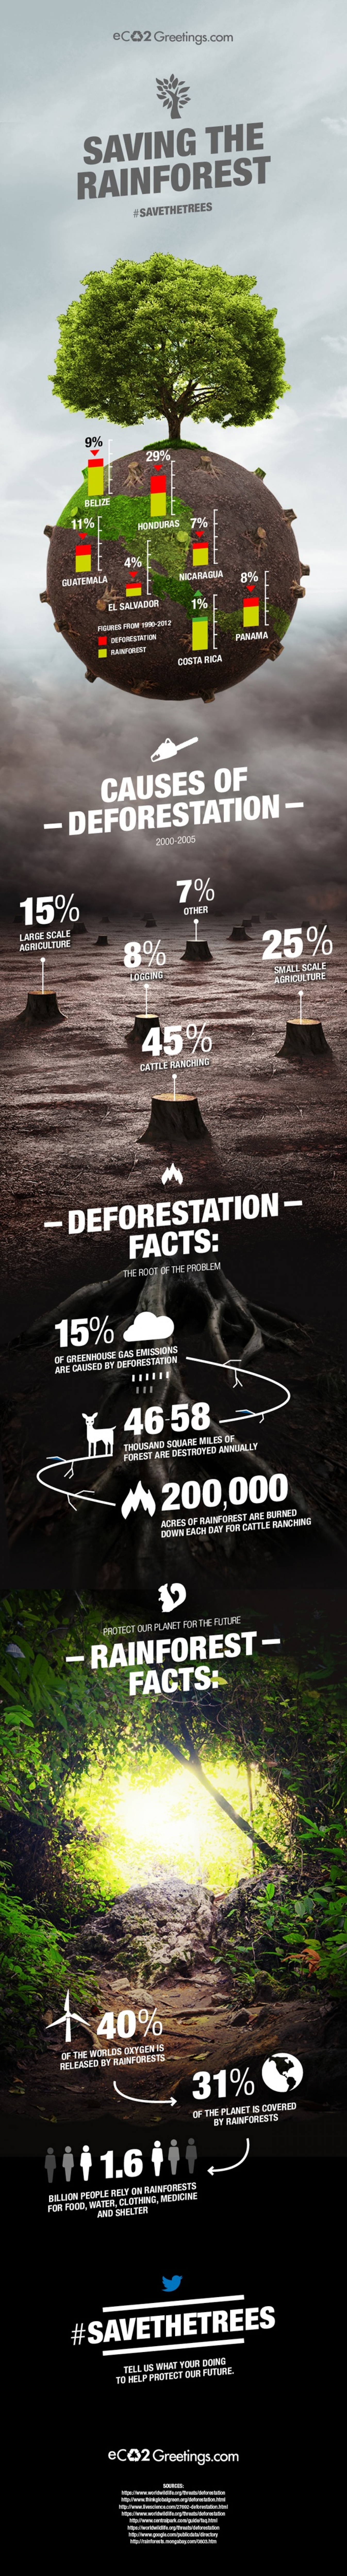 The Alarming Truth Behind Deforestation - #SavetheTrees Infographic